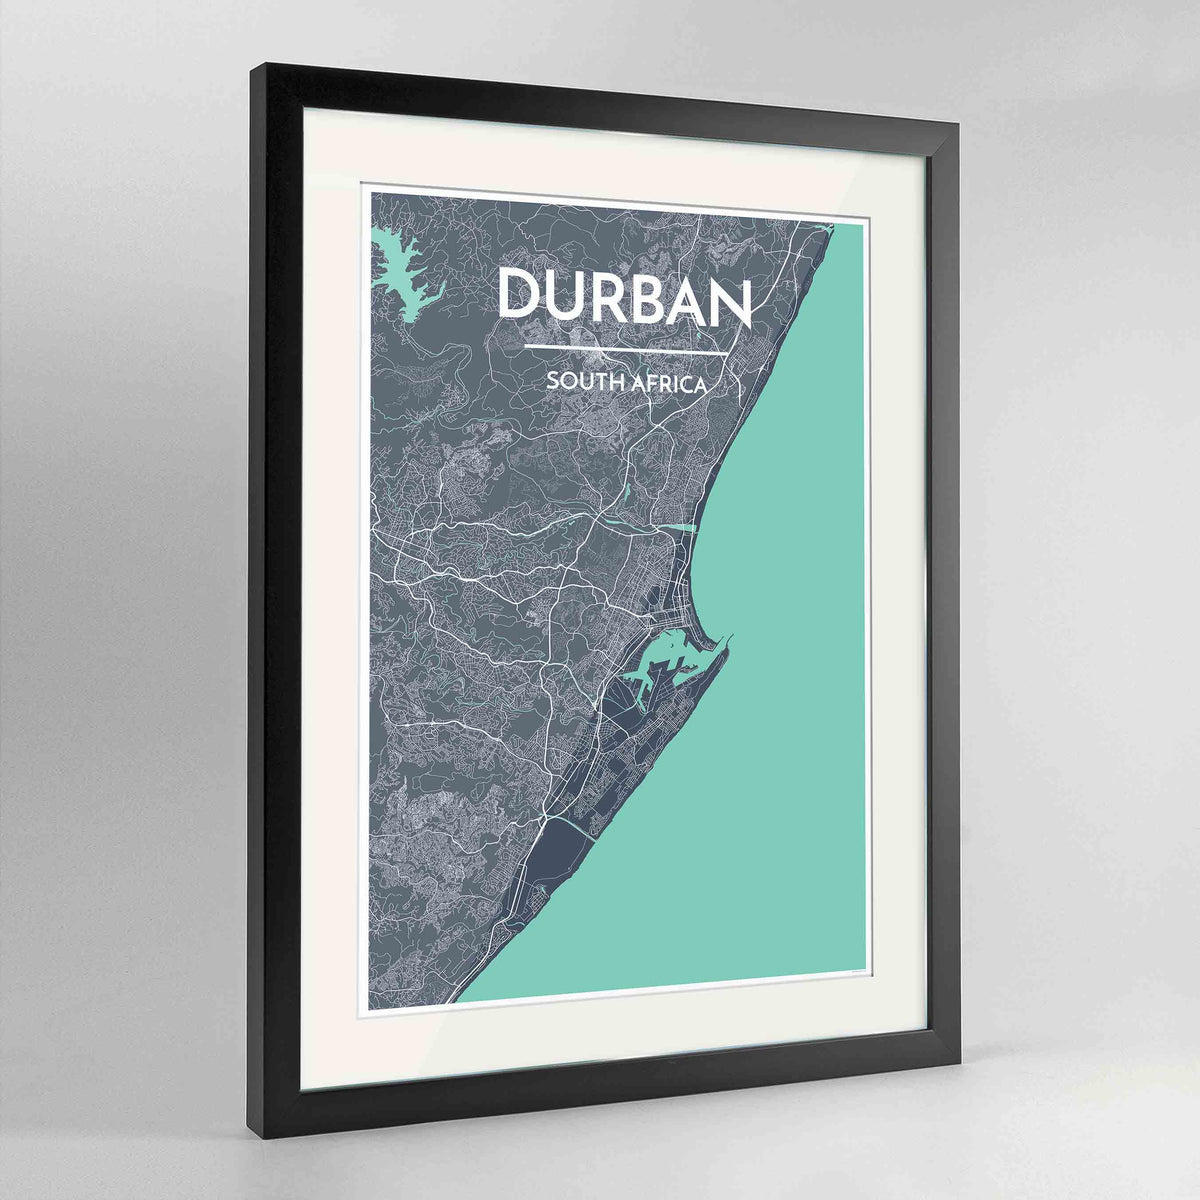 "Framed Durban Map Art Print 24x36"" Contemporary Black frame Point Two Design Group"